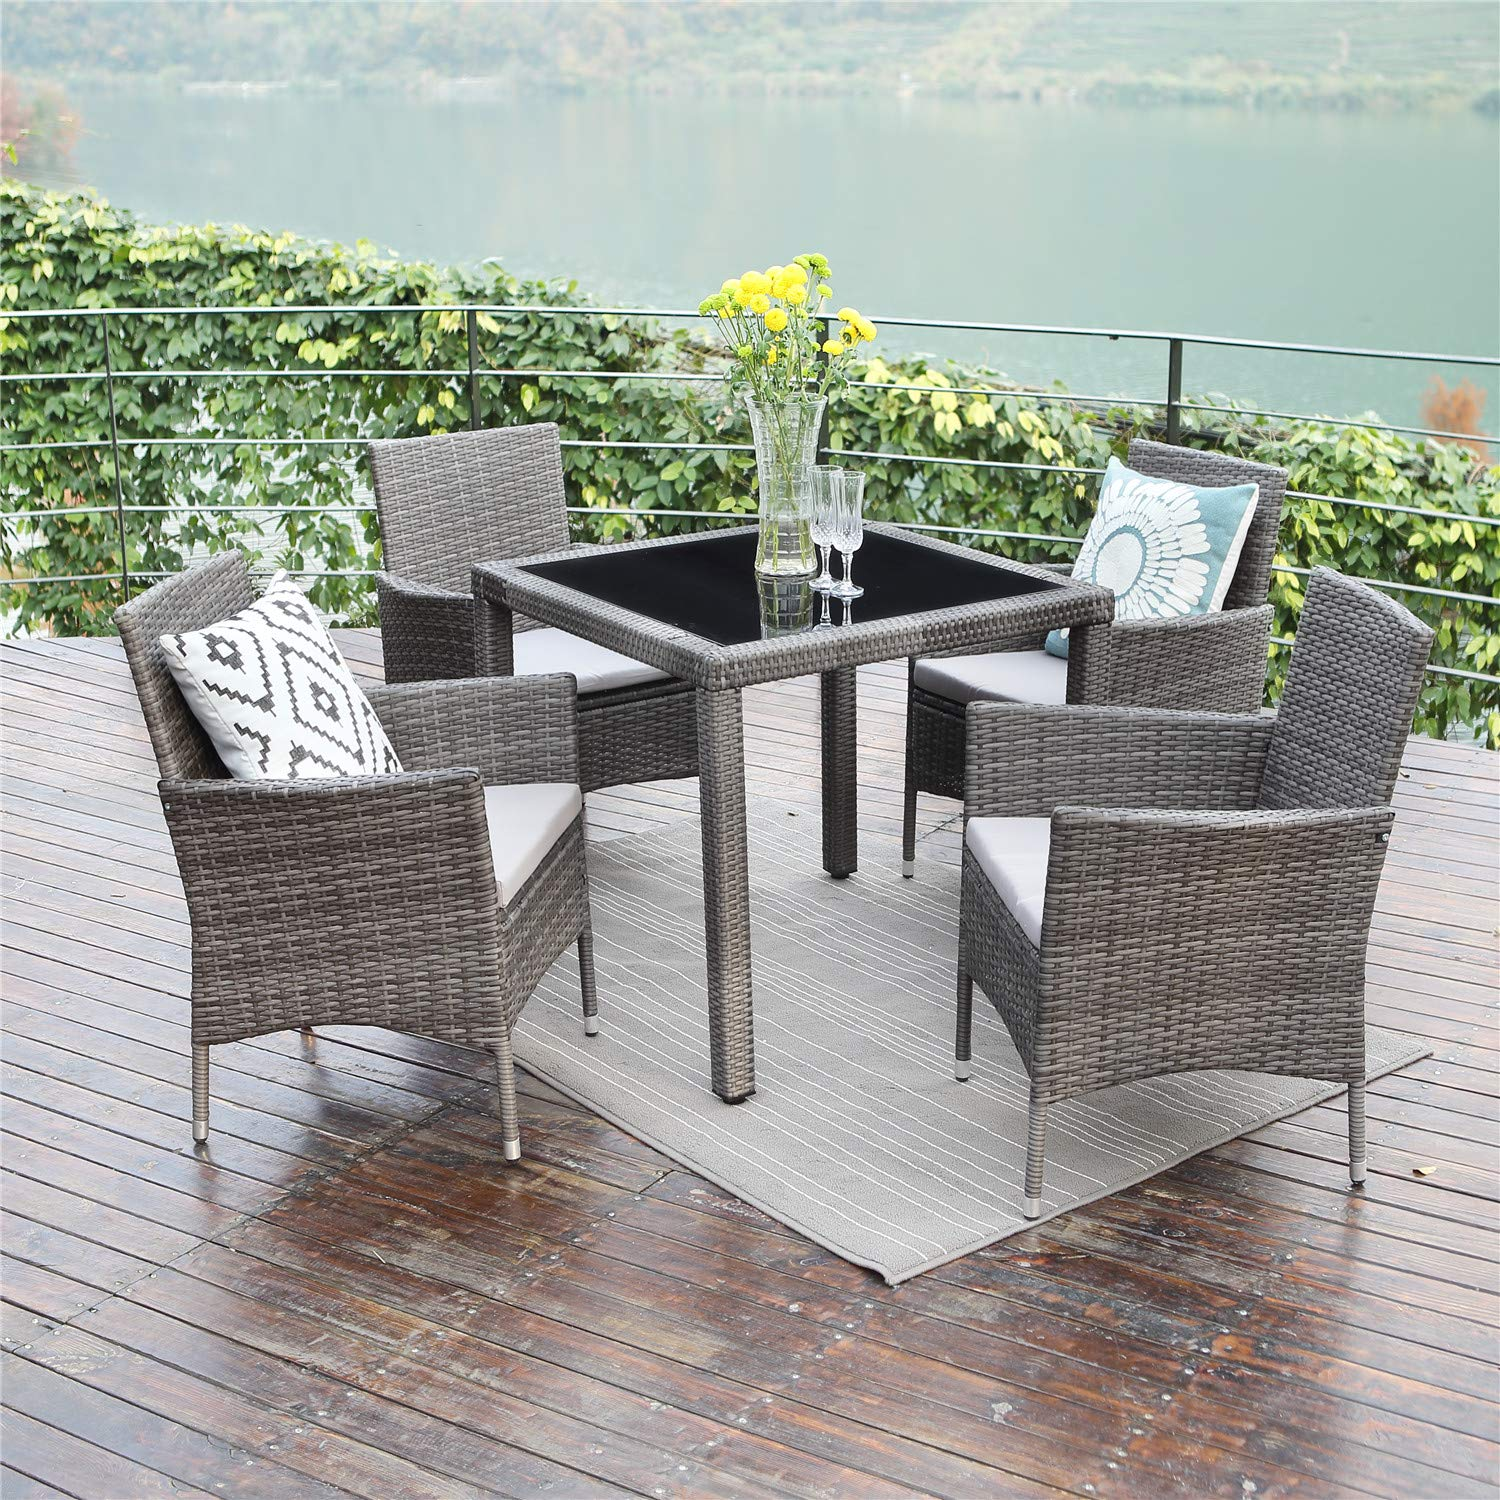 Wisteria Lane 5PCS Patio Dining Table Set, Outdoor Conversation Set Glass Table with Cushioned Wicker Chairs Garden Lawn Bar Furniture,Grey